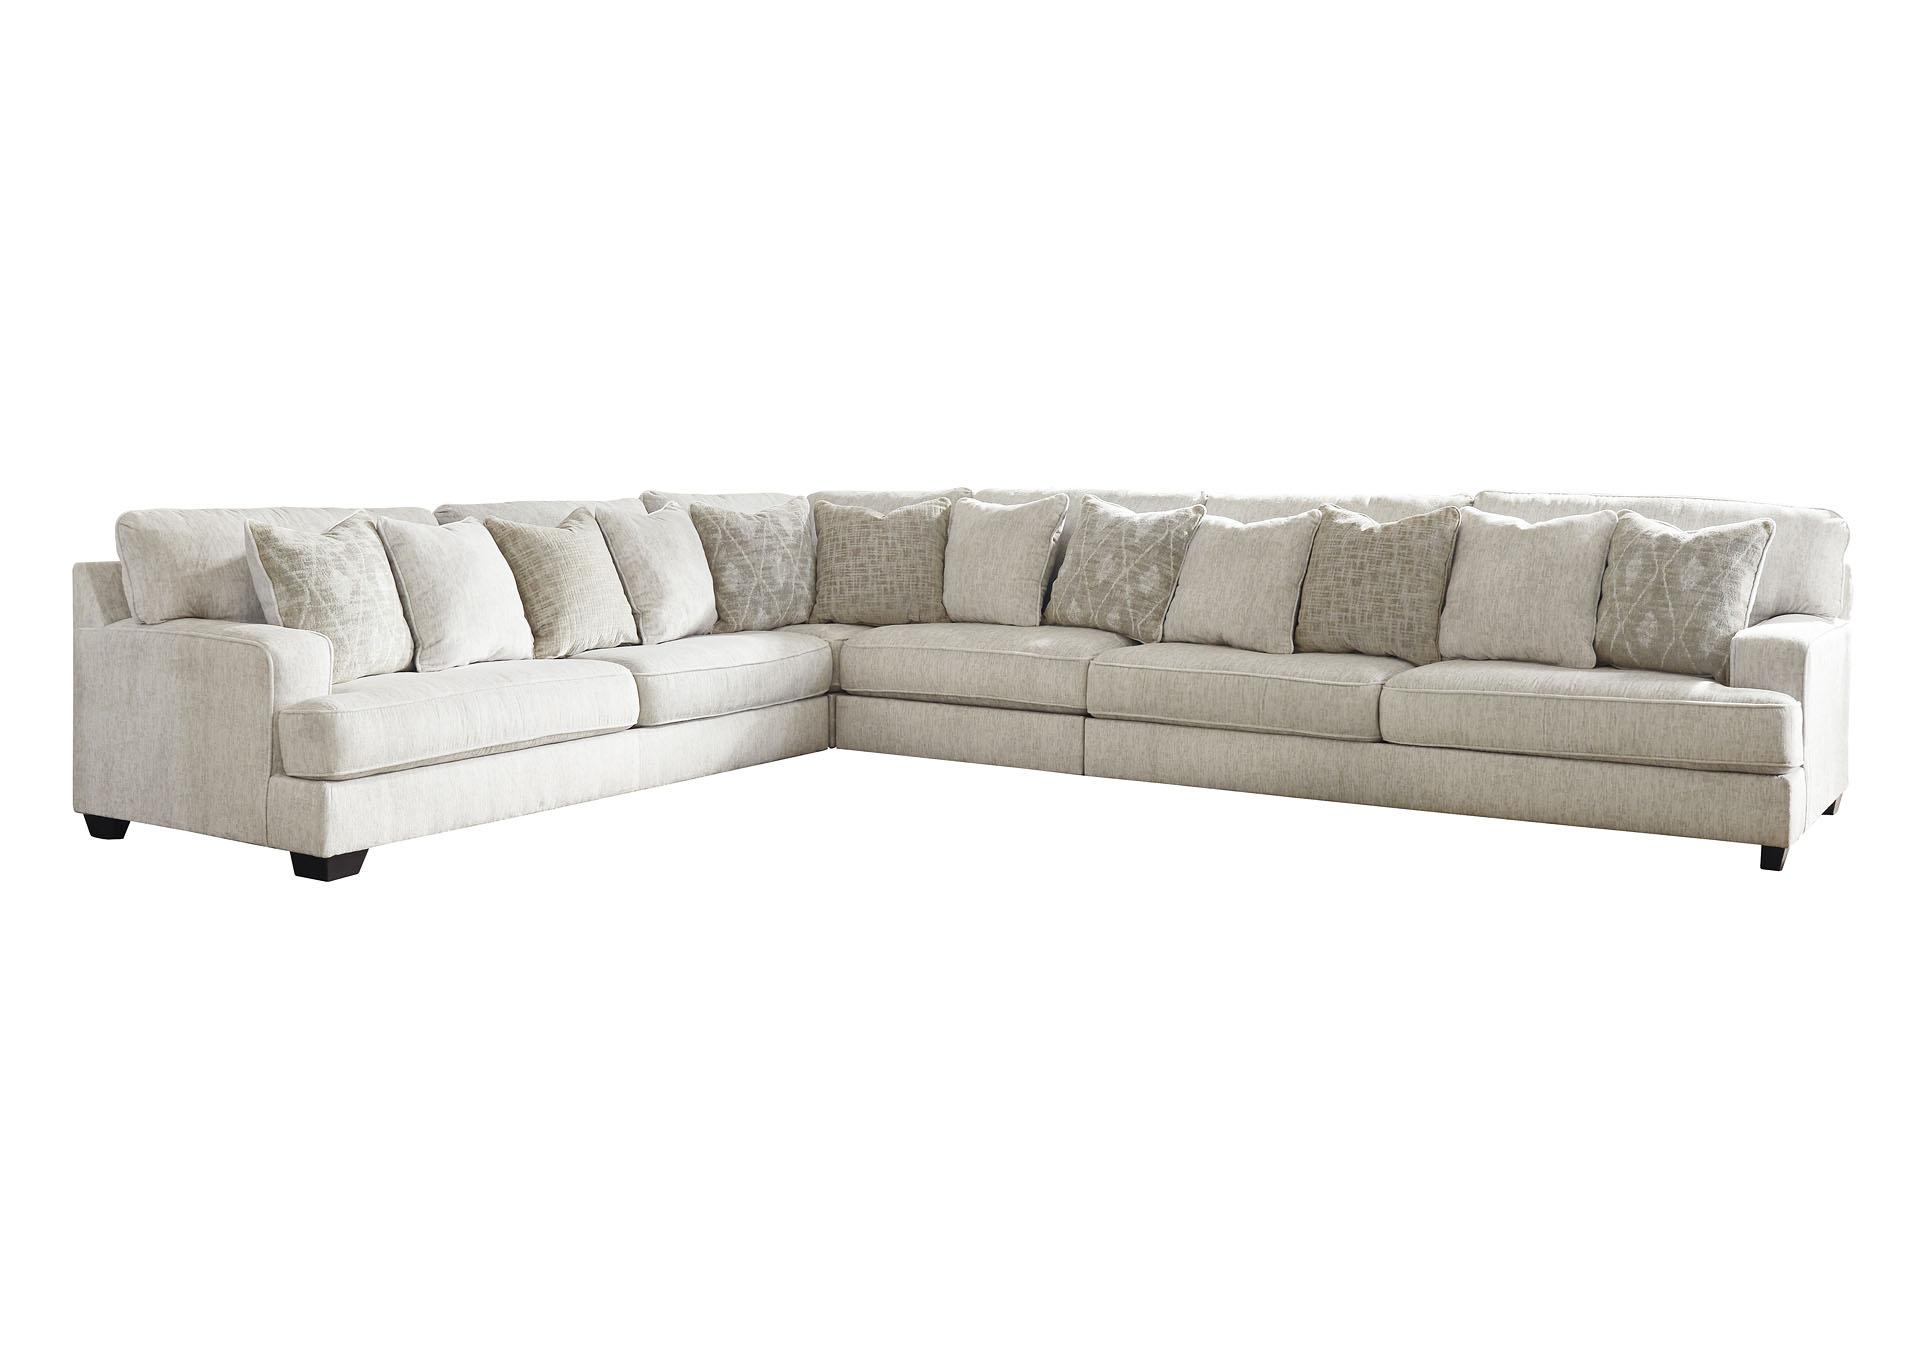 Rawcliffe 4 Piece Sectional,Signature Design By Ashley